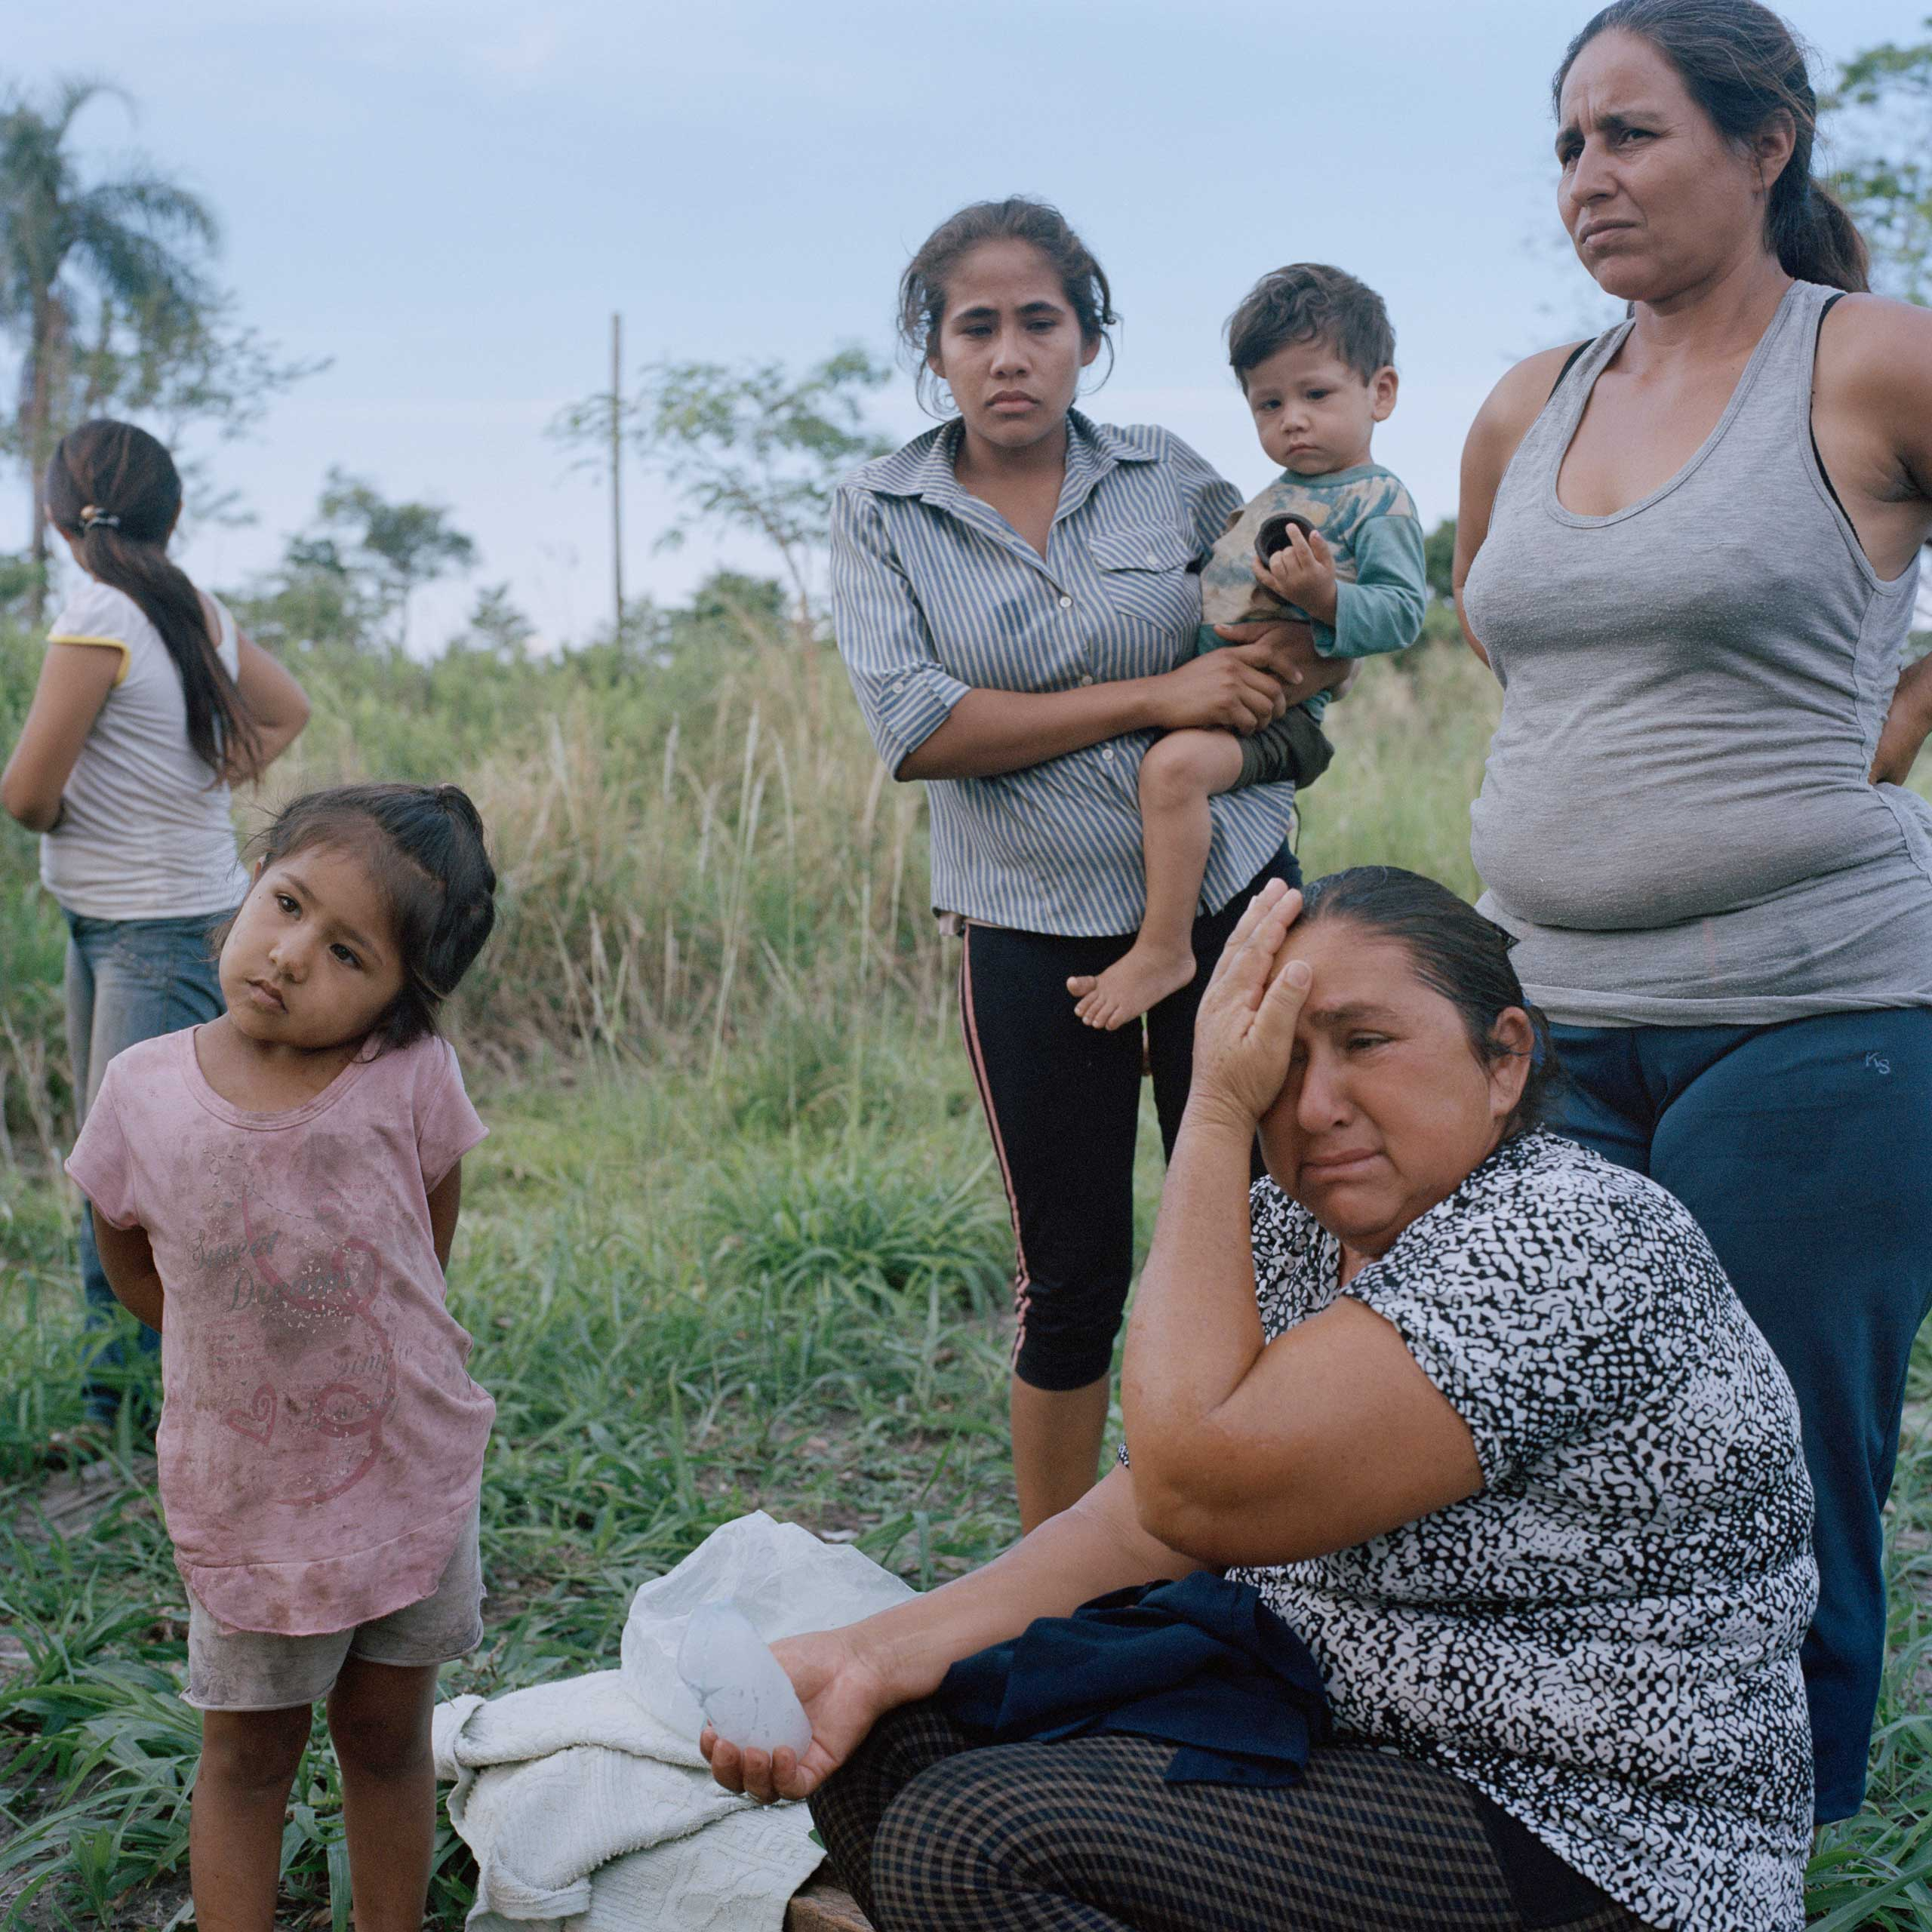 María Lina Estorales (bottom right) sobs as she explains how she and 21 other families of the small community of Guayaqui Cuá were evicted and their properties burned two days earlier. She said security men from the nearby cattle ranch together with local police officers evicted them without notice on behalf of the large-estate owner. Disputes over land ownership are a major issue in Paraguay.